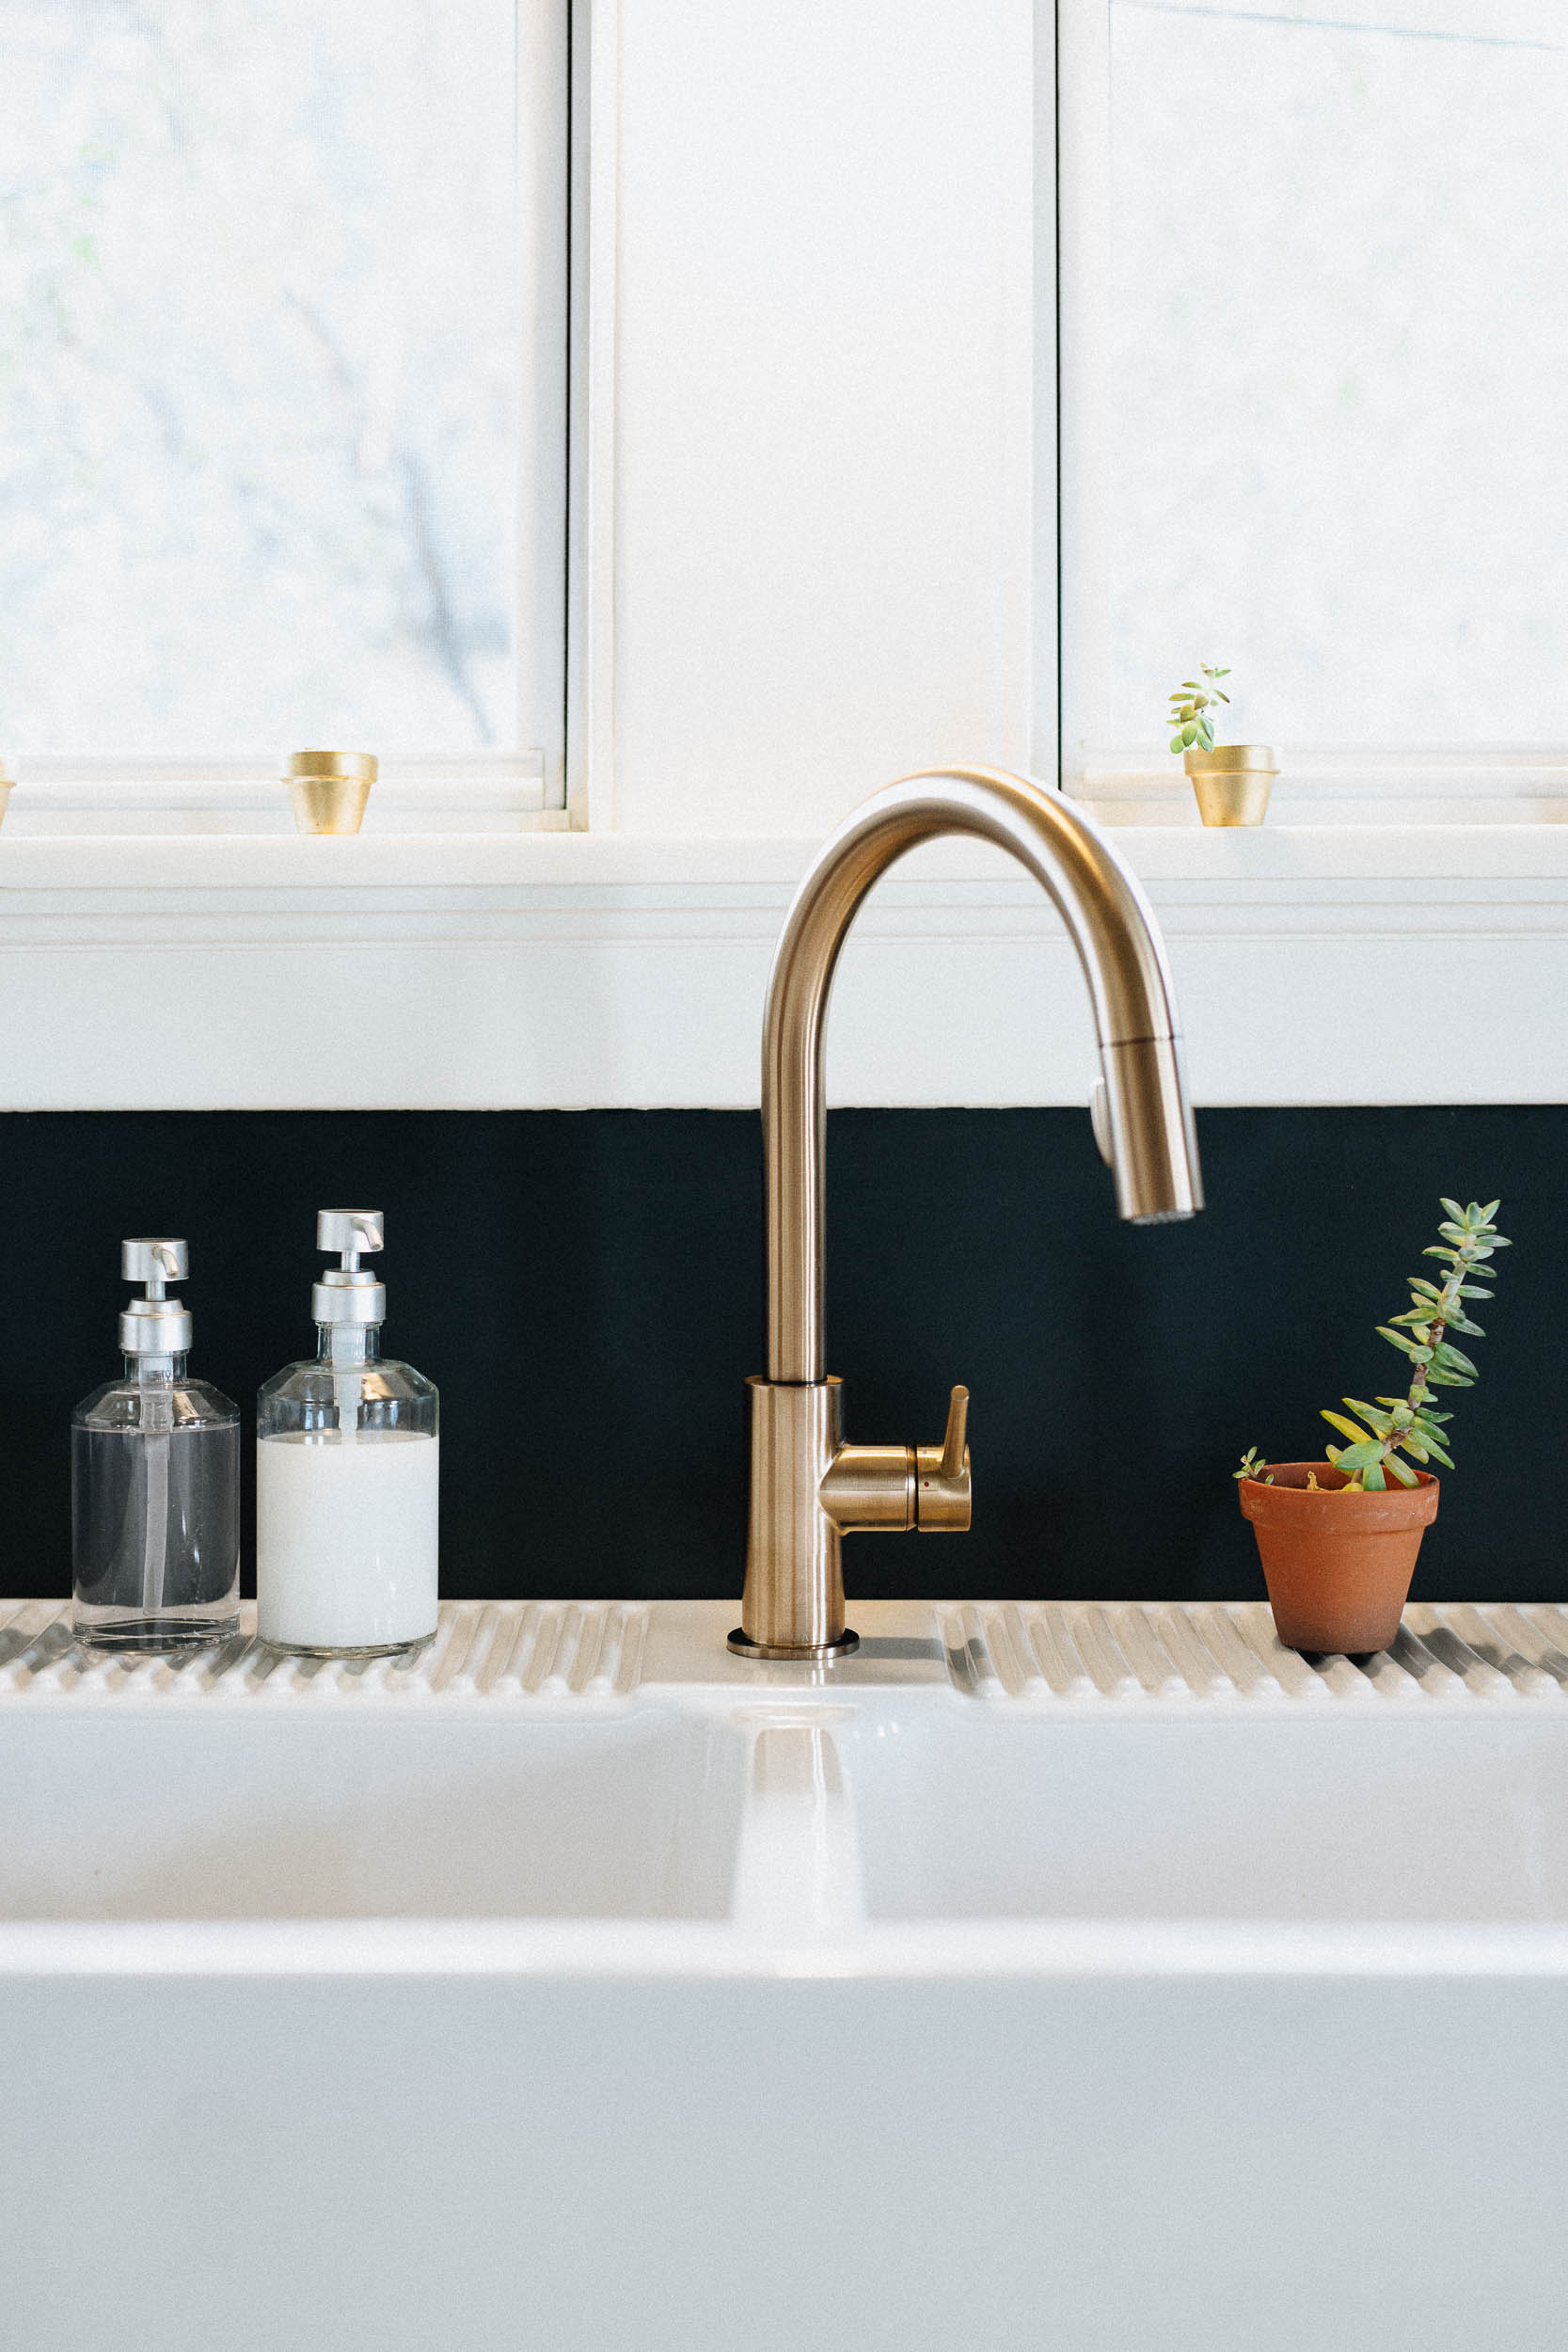 Farmhouse Sink with Gold Faucet